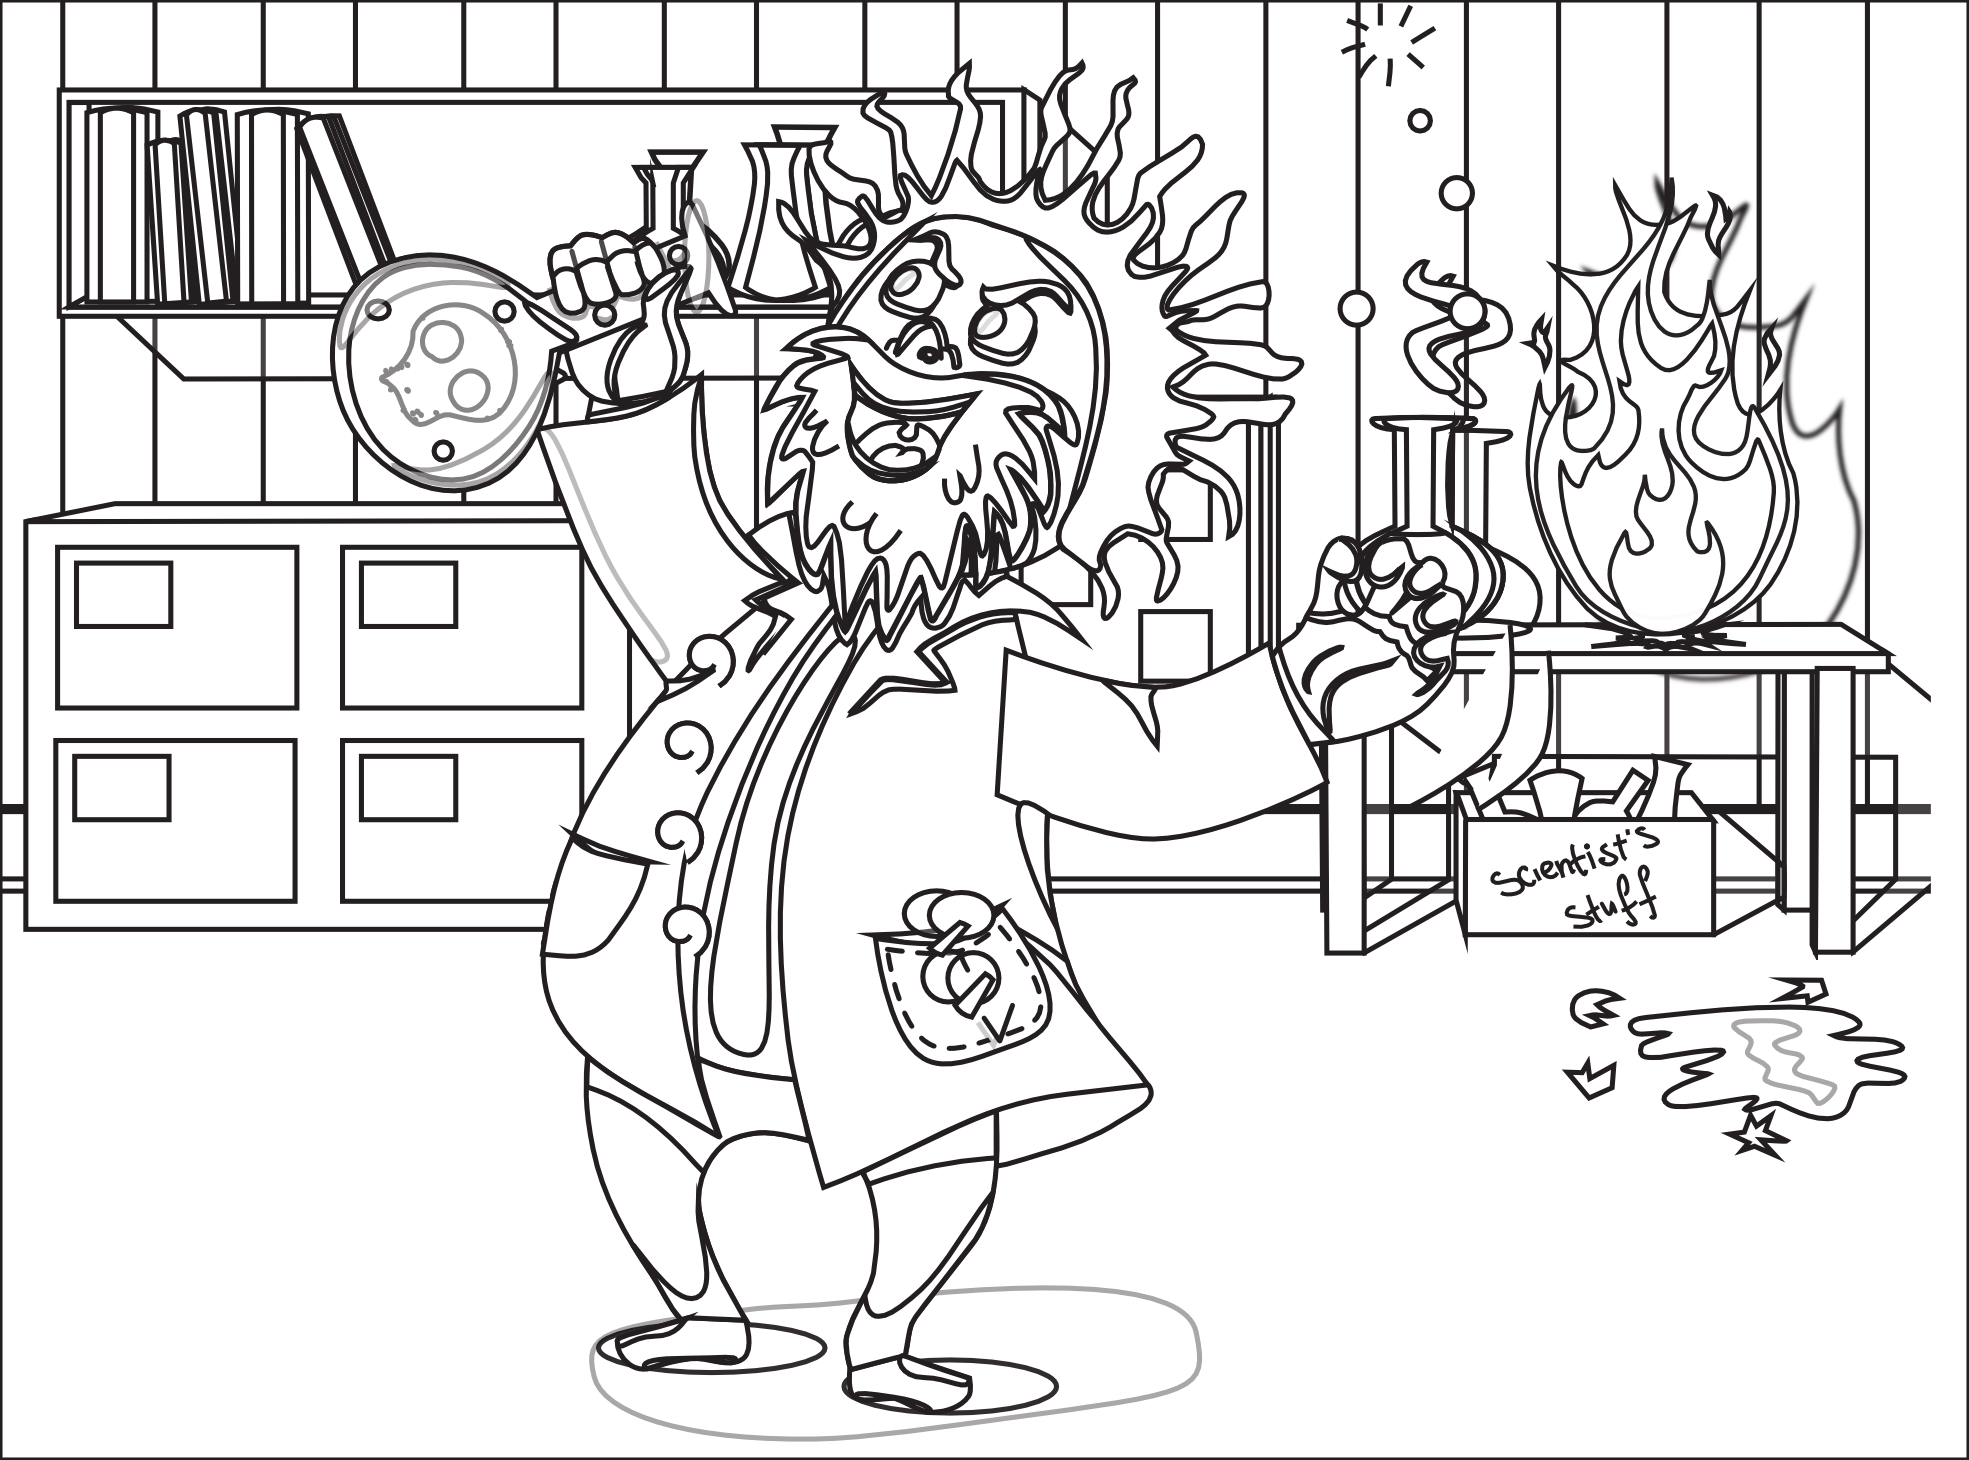 PlusPng.com Mad Scientist Black White Line Art Coloring Book Colouring  1969px.png .